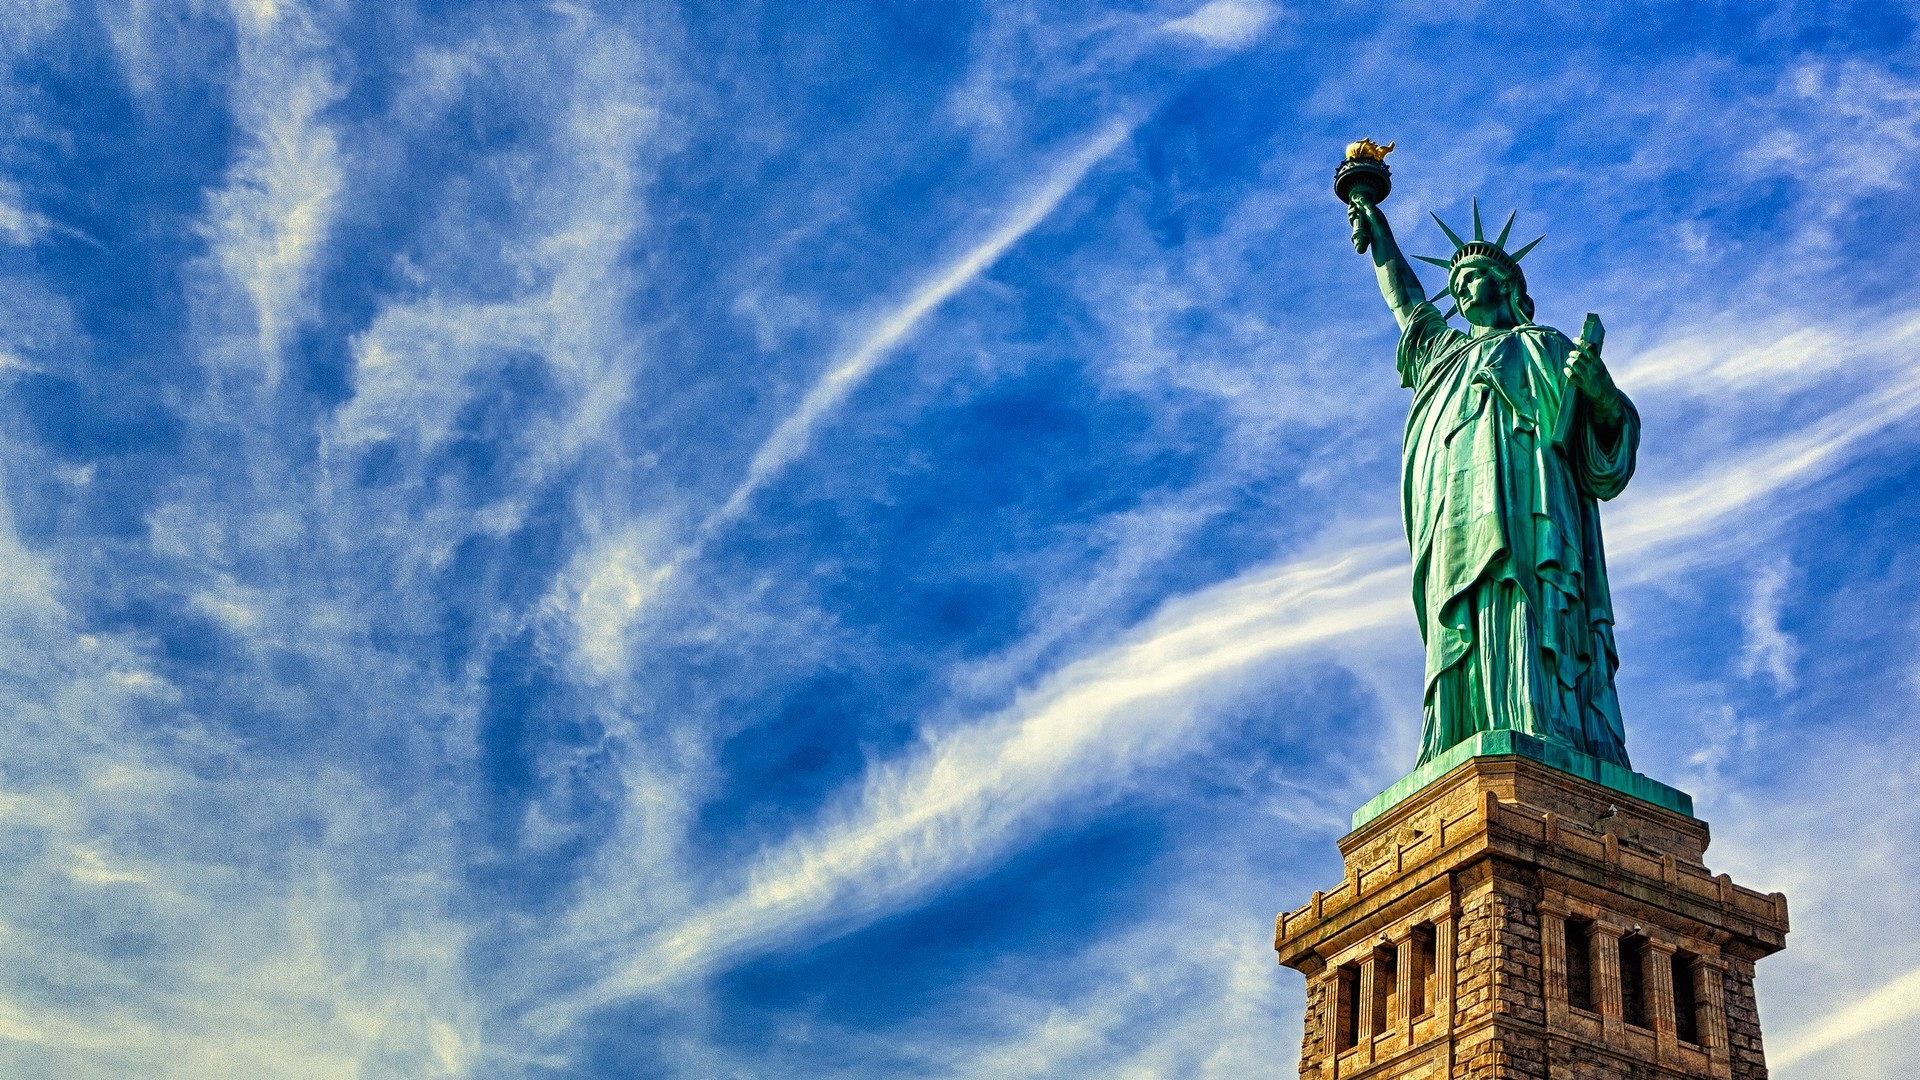 The Beautiful Statue Of Liberty Hd Desktop Background HD wallpapers